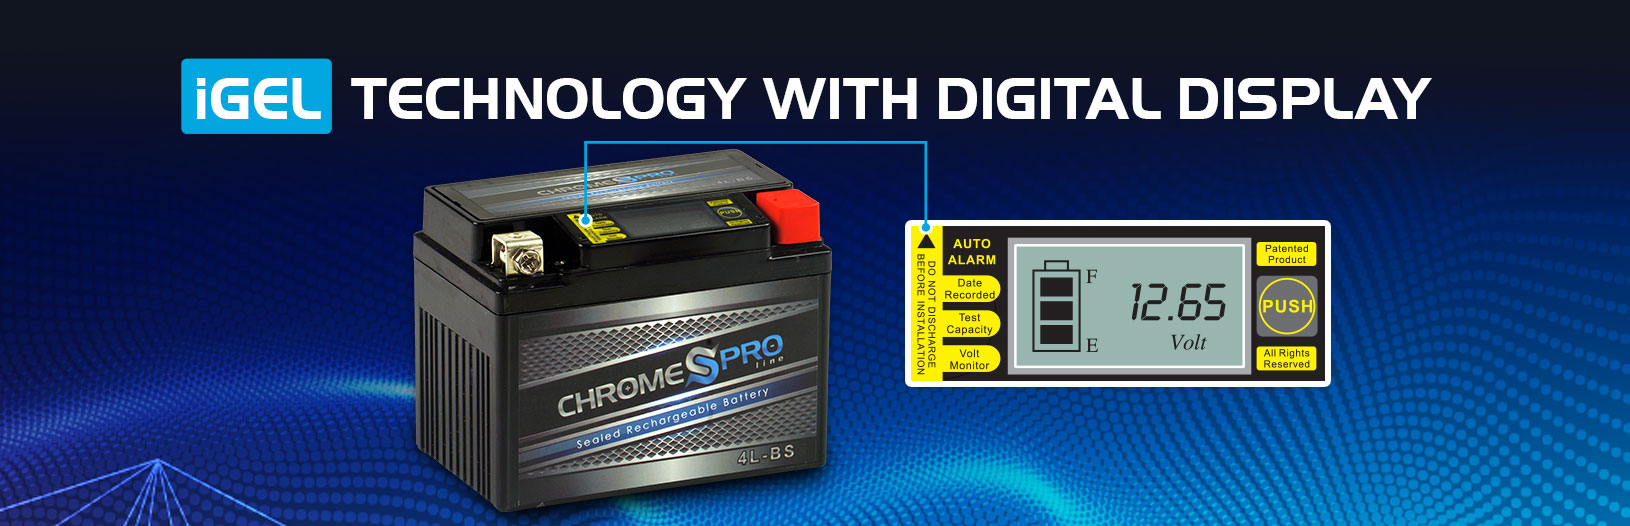 Igel Technology and Digital Display